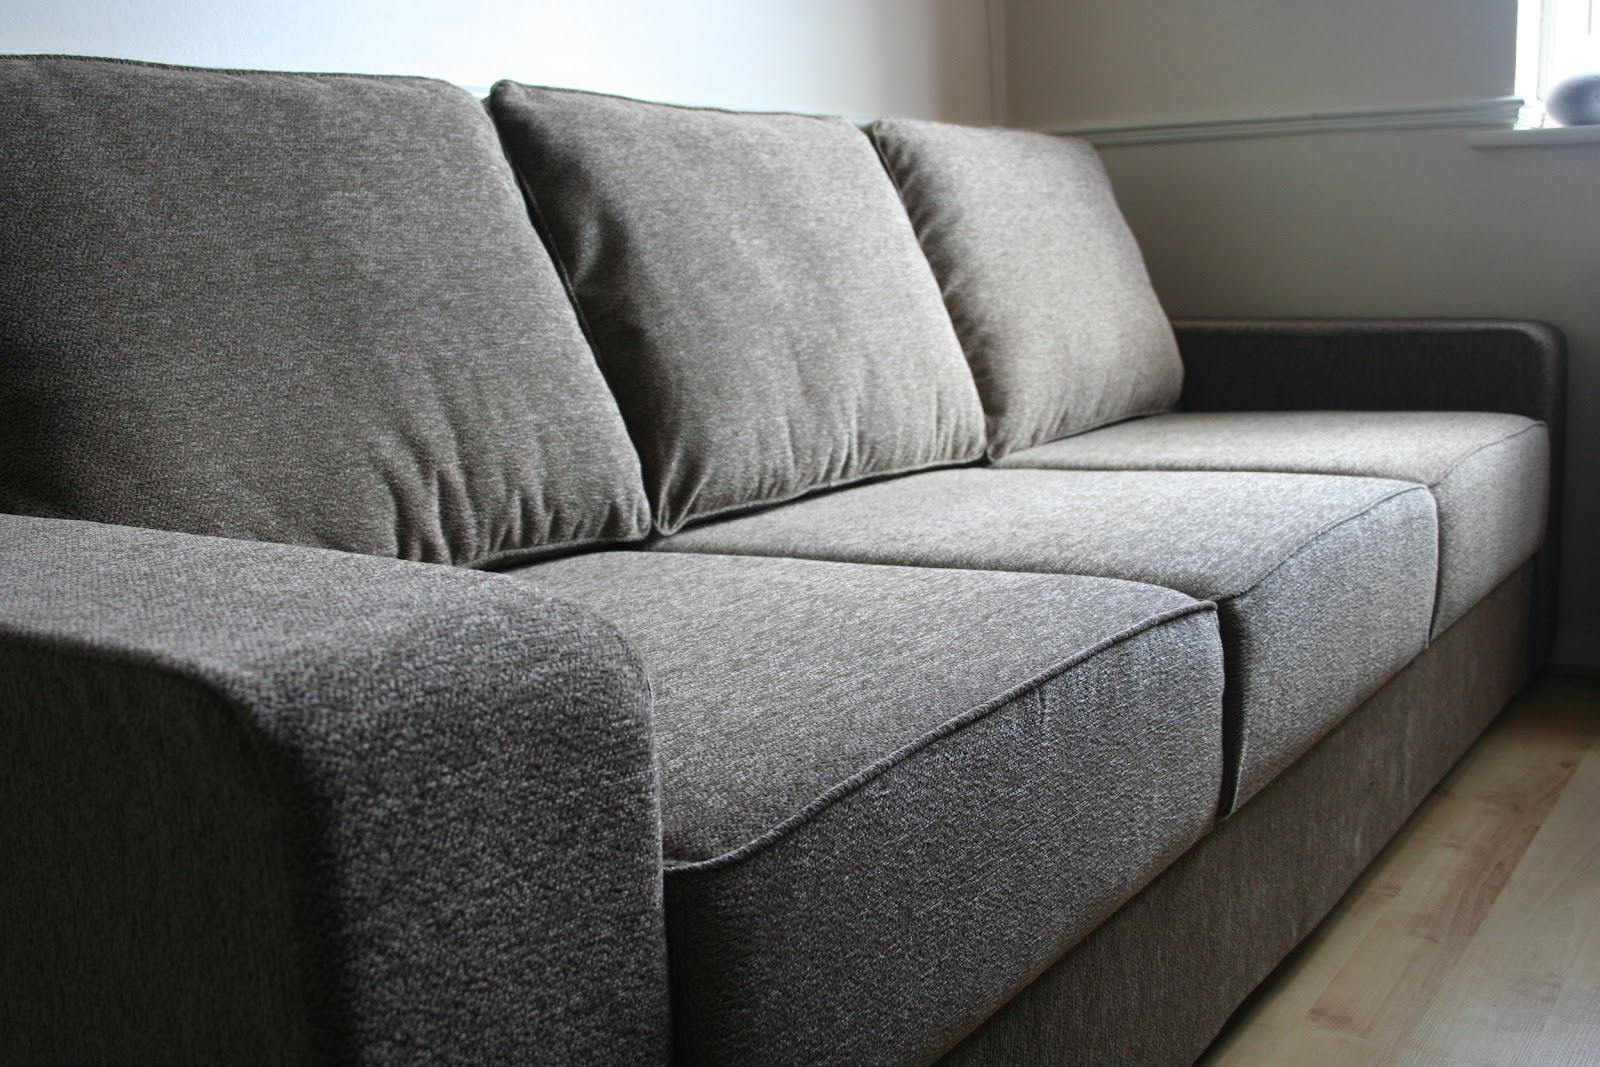 sofa cushion support reviews wooden frame with cushions modular nabru review